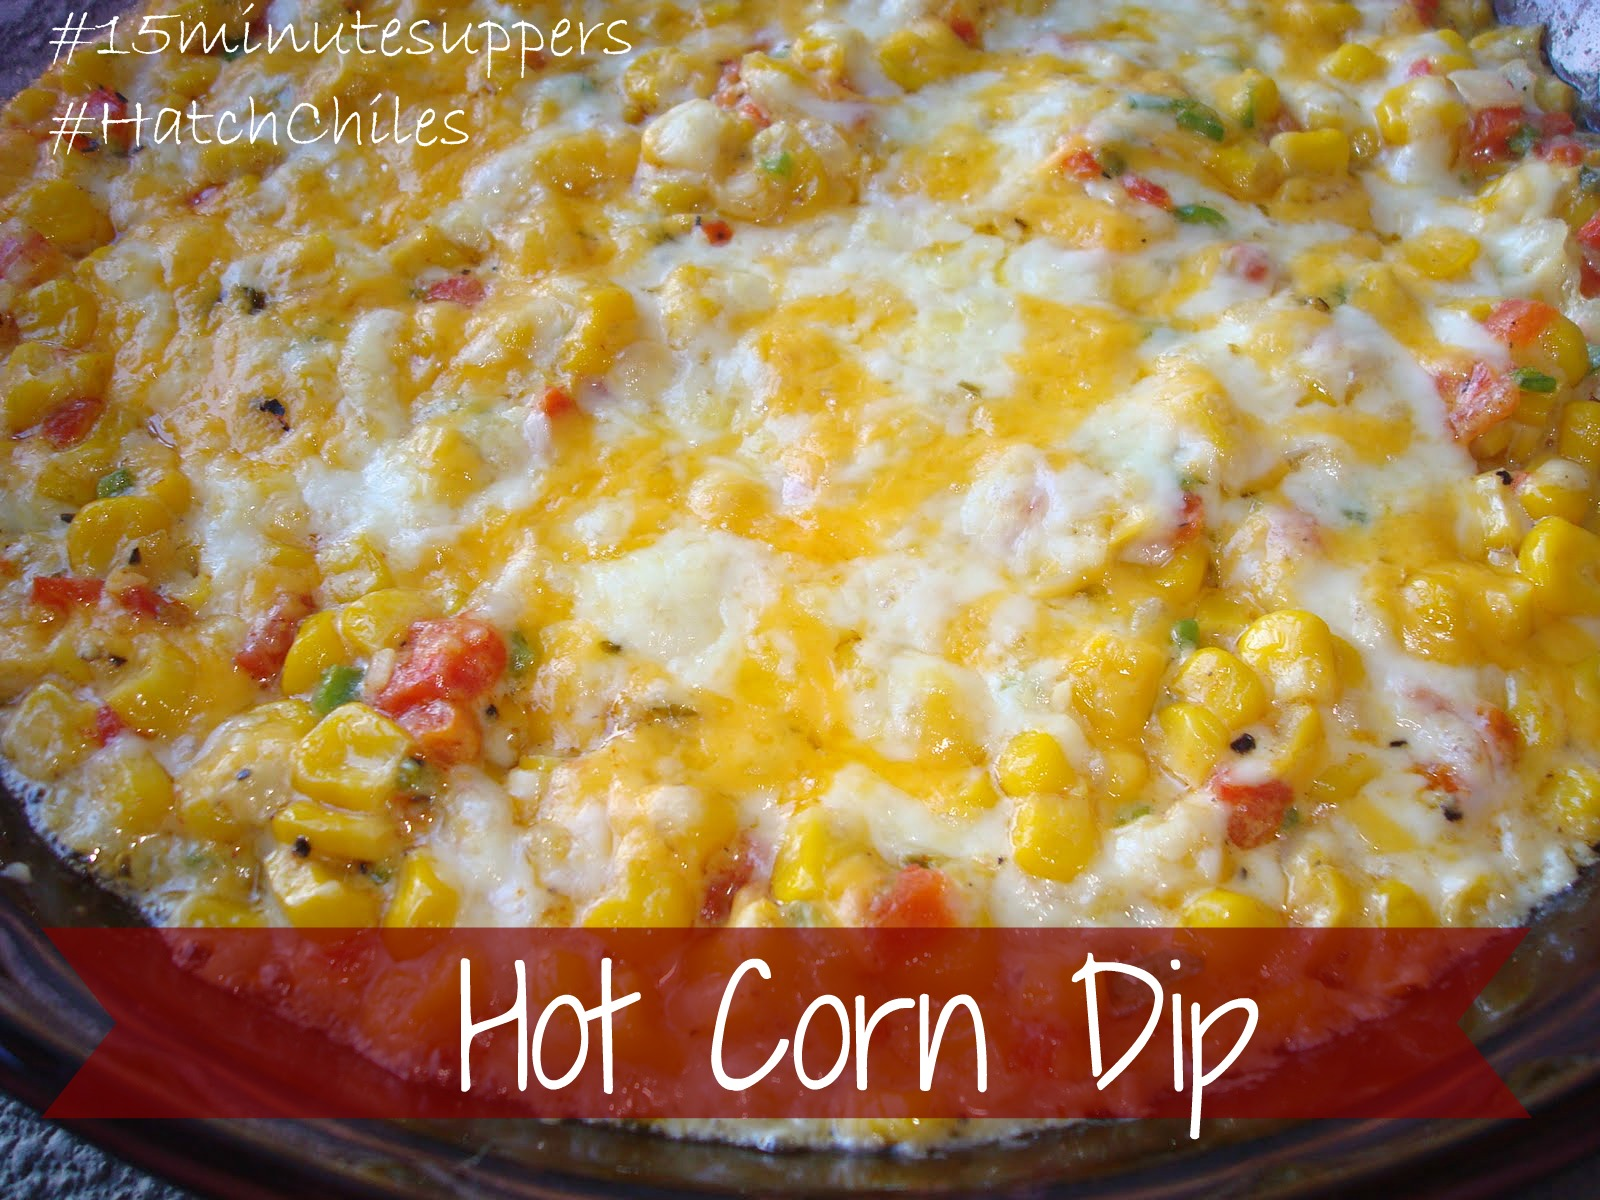 Hot Corn Dip Featuring Hatch Chiles #15minutesuppers #hatchChiles